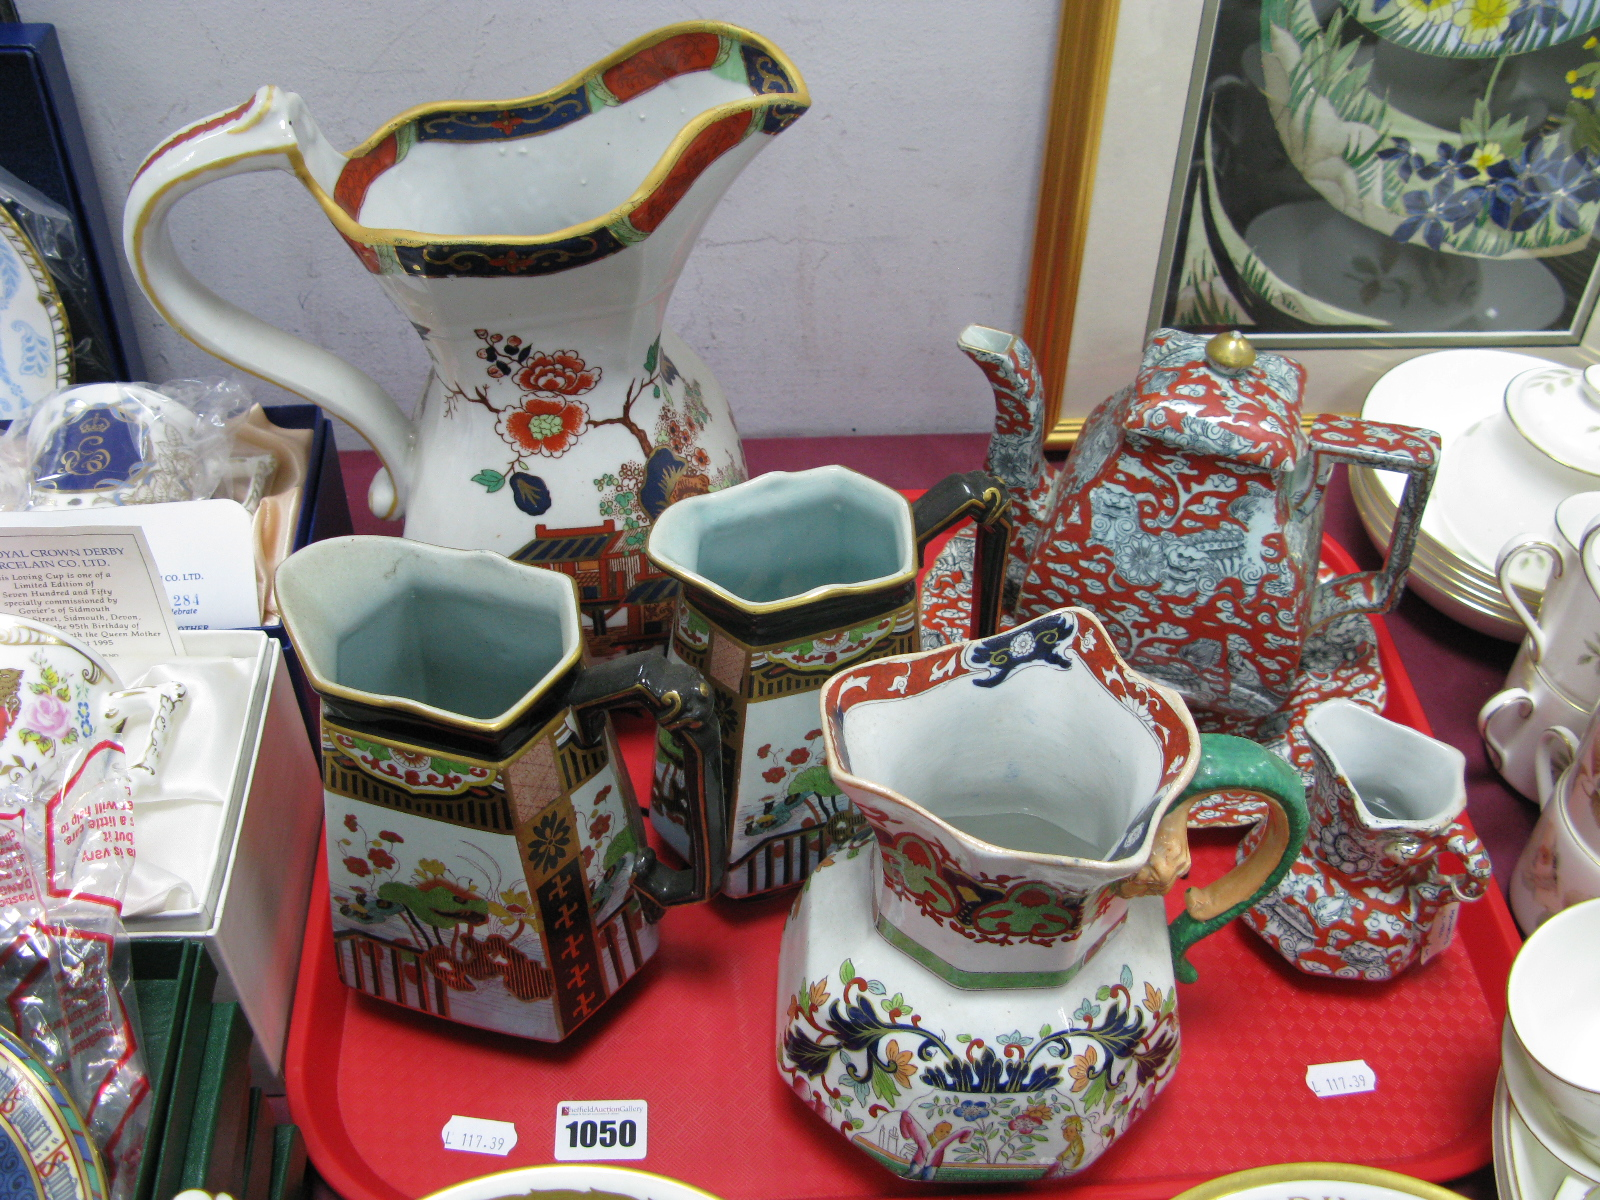 Lot 1050 - Ashworth's Ironstone Teapot, decorated with Chinese mythologiocal beasts on iron red ground, a